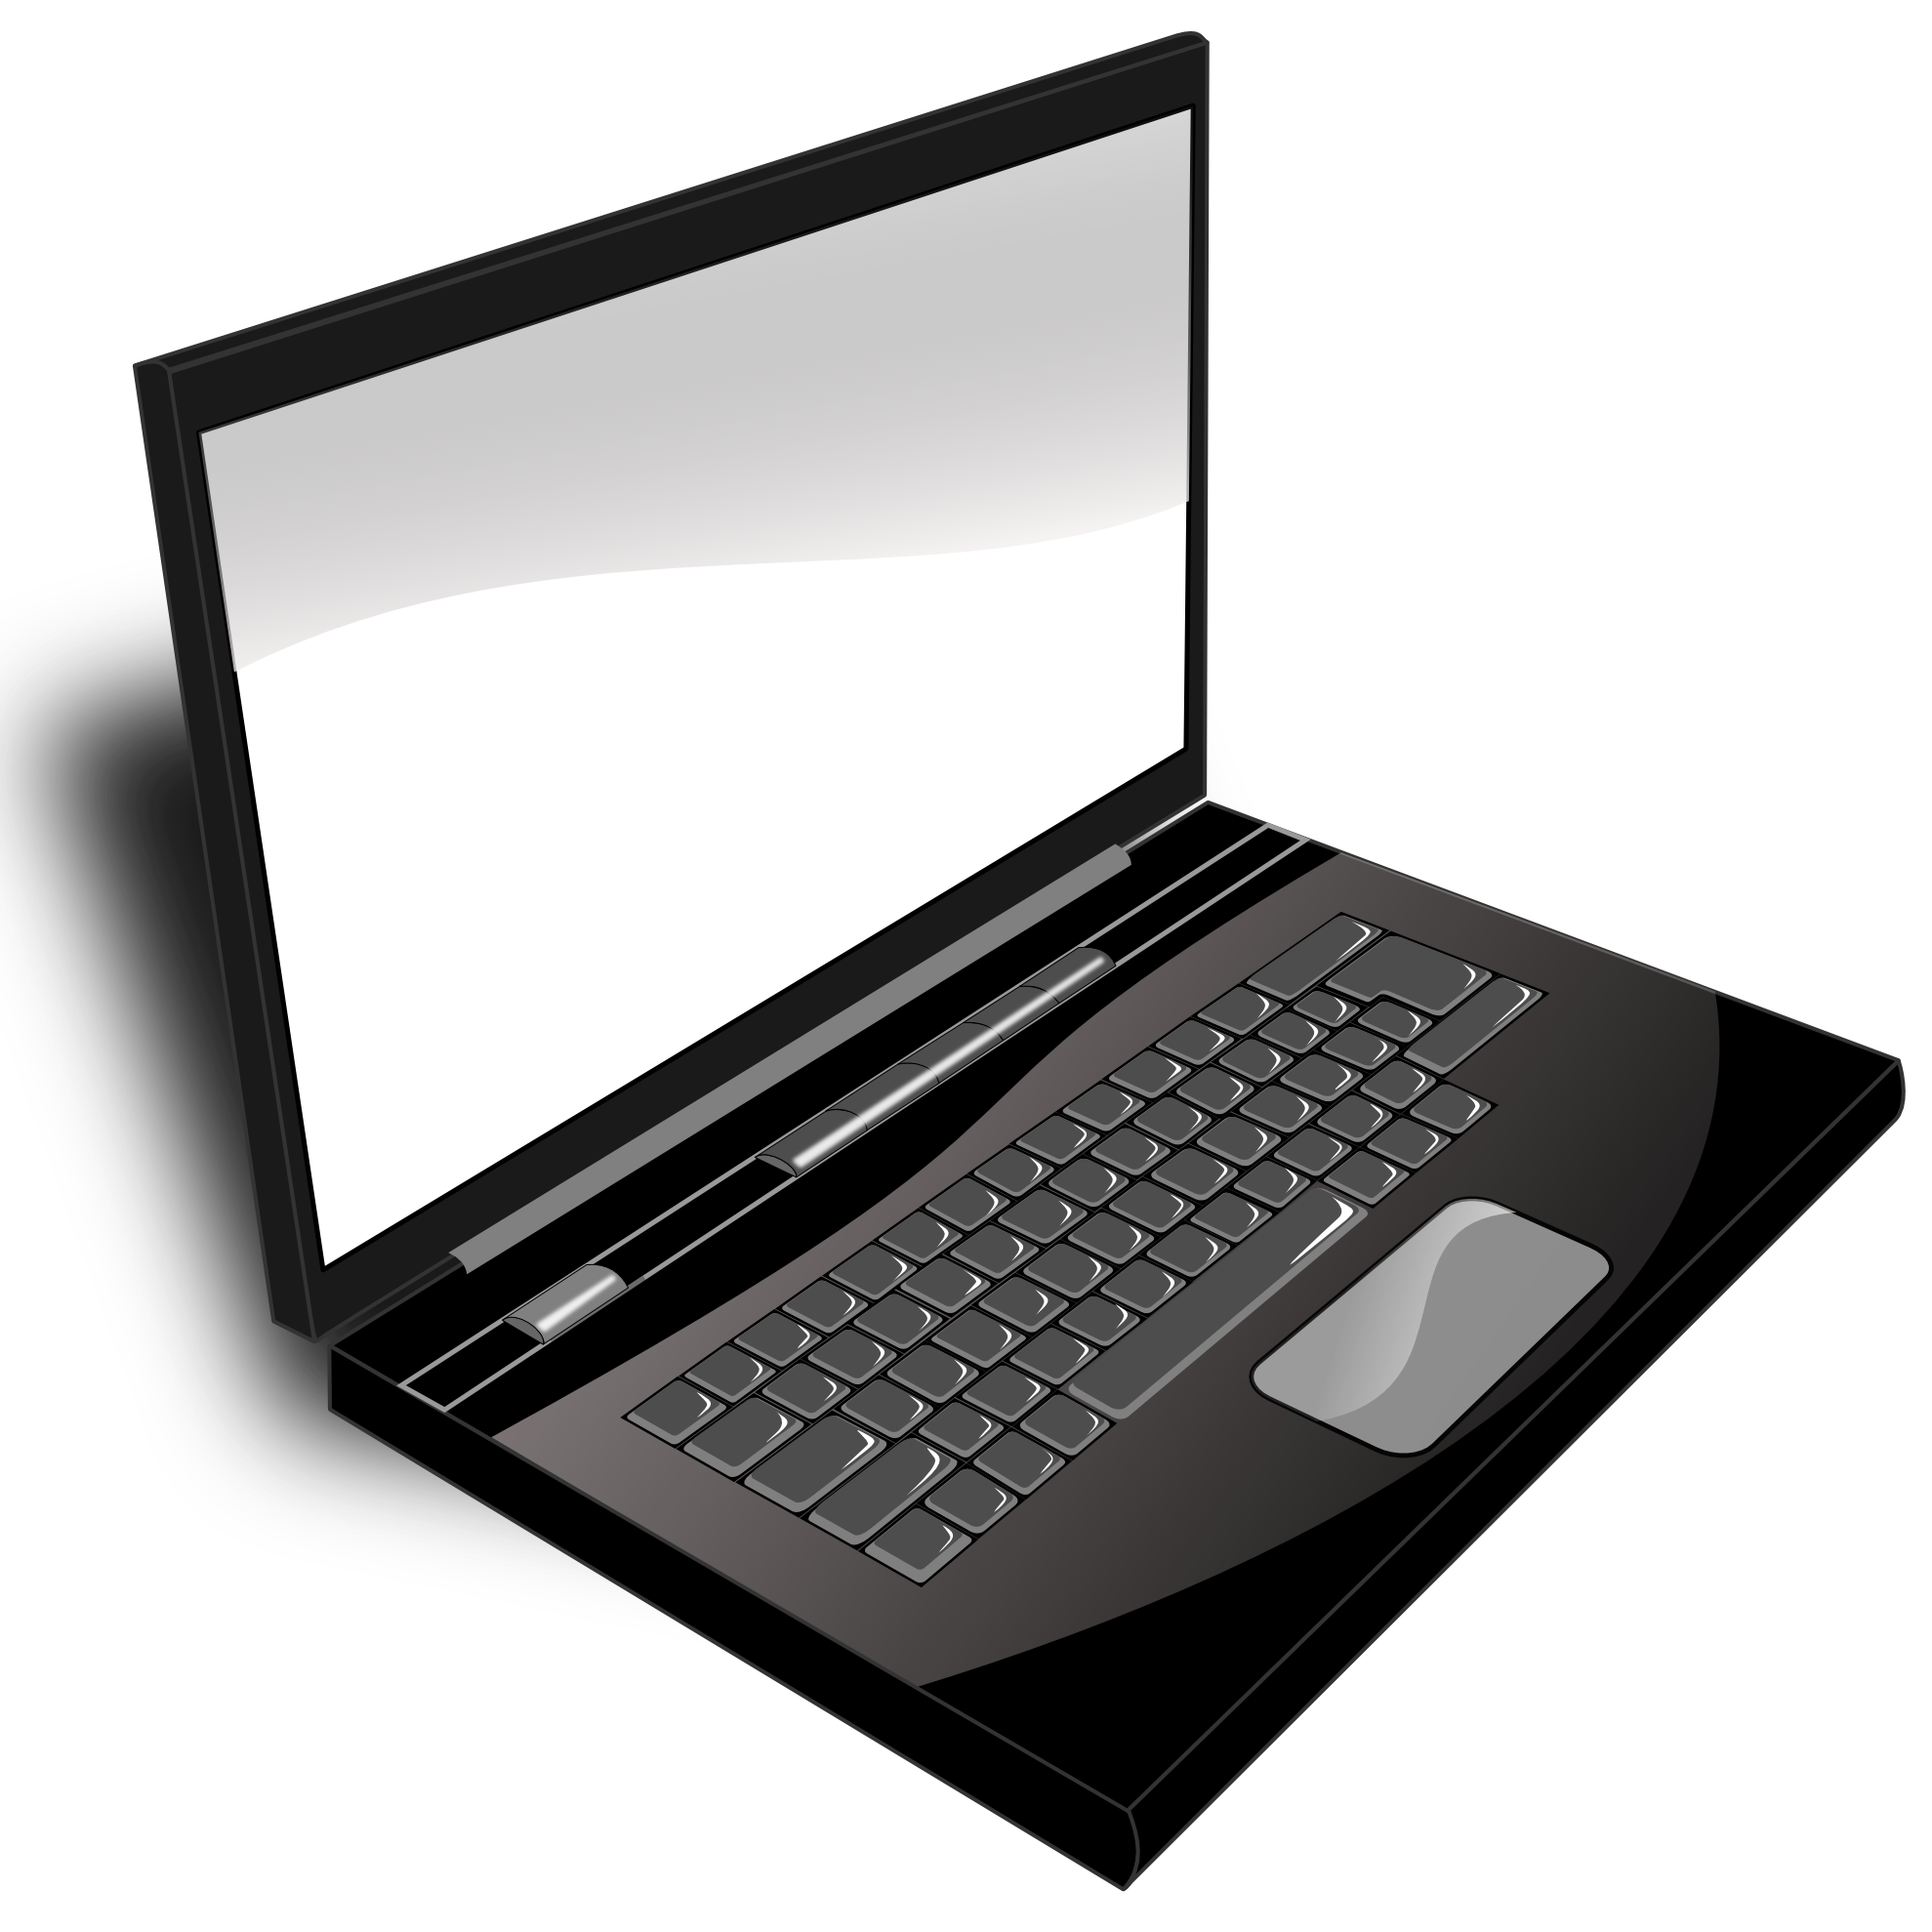 png freeuse download From their clipart panda. Vector computer laptop